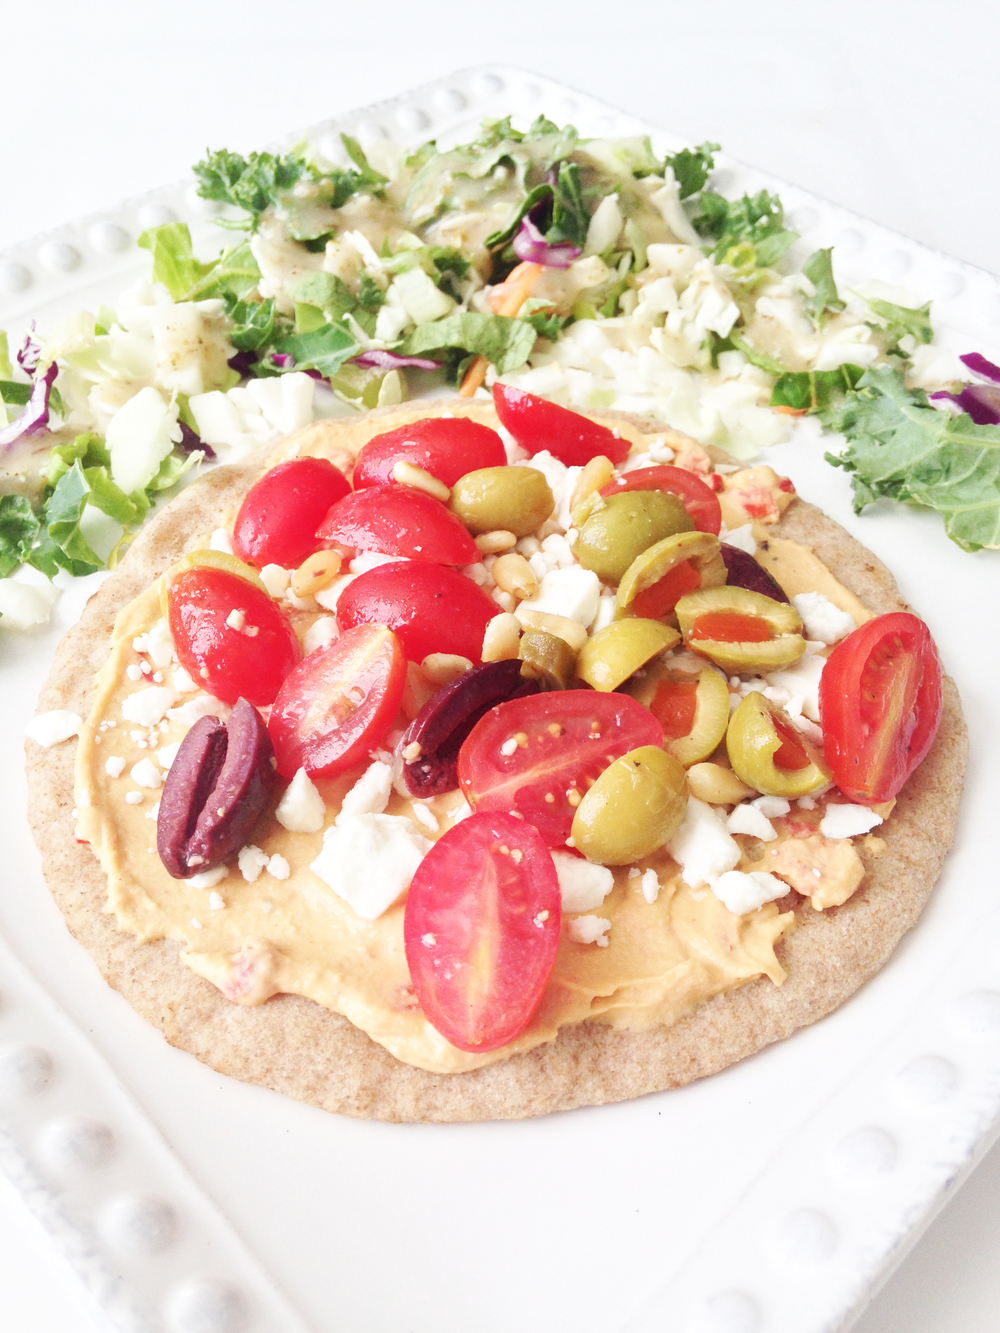 Greek Pita 'Pizza' — The Skinny Fork